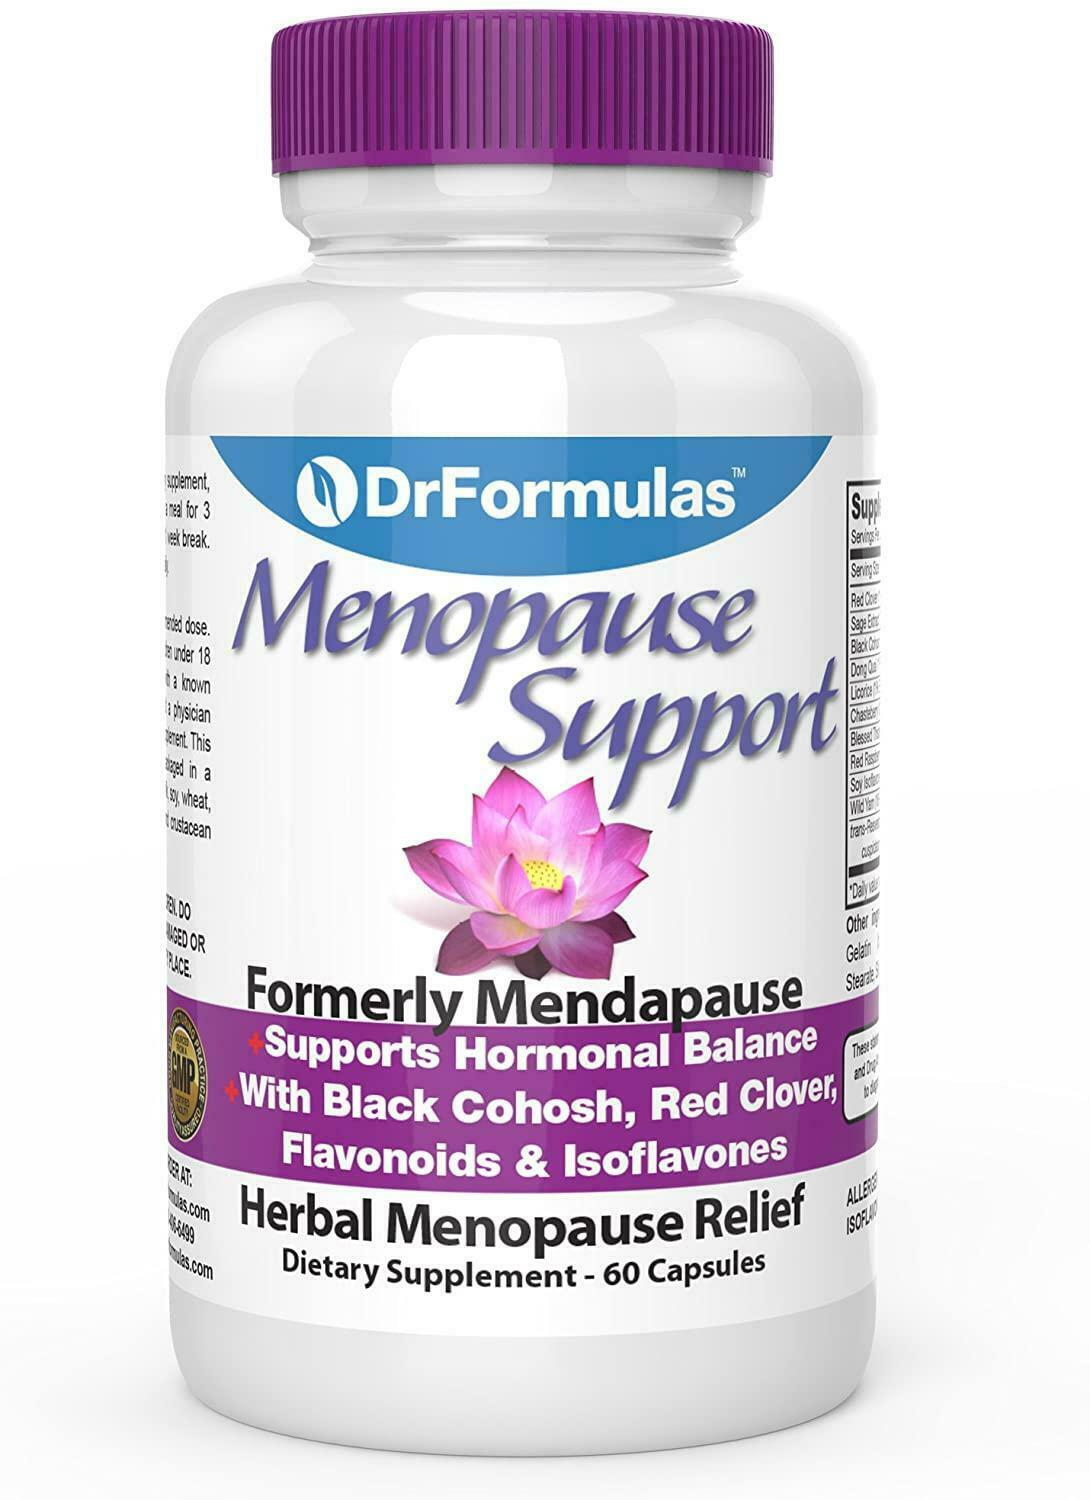 Menopause Supplements For Relief, Support And Weight Loss -6462